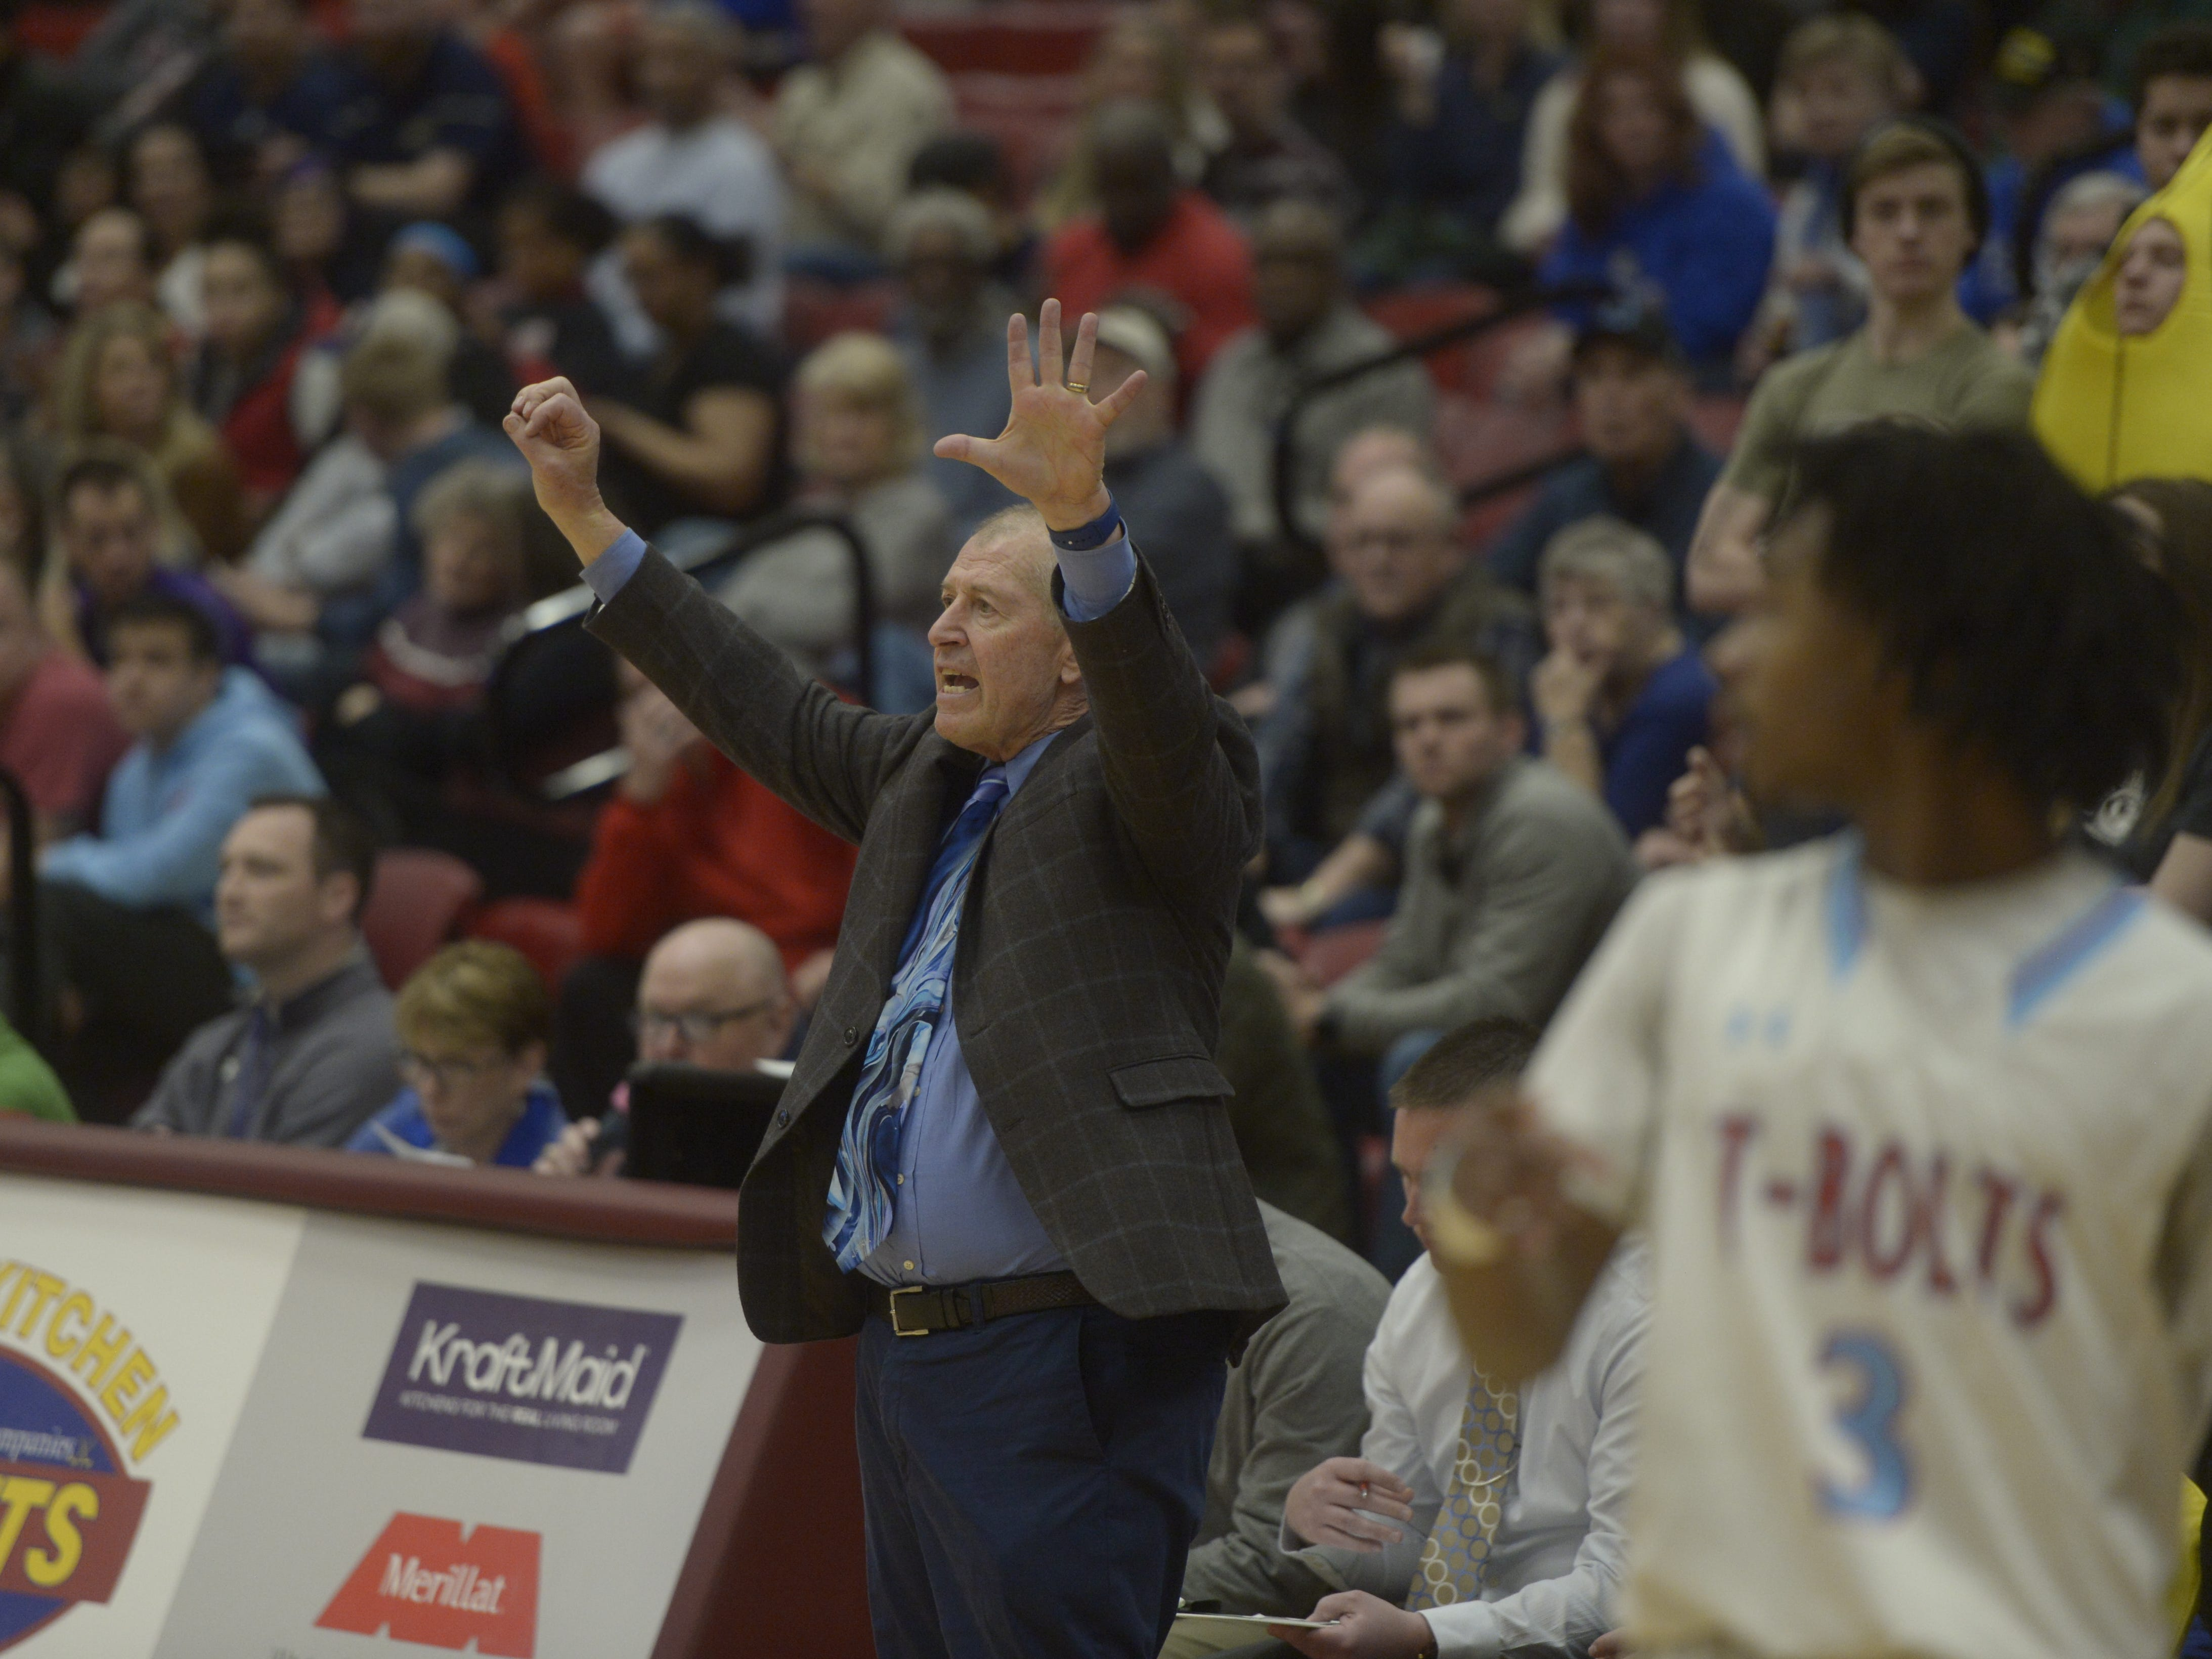 Resurrection Christian basketball coach Bruce Dick gives instructions during a Class 3A quarterfinals game against Manual at the University of Denver on Thursday, March 7, 2019.